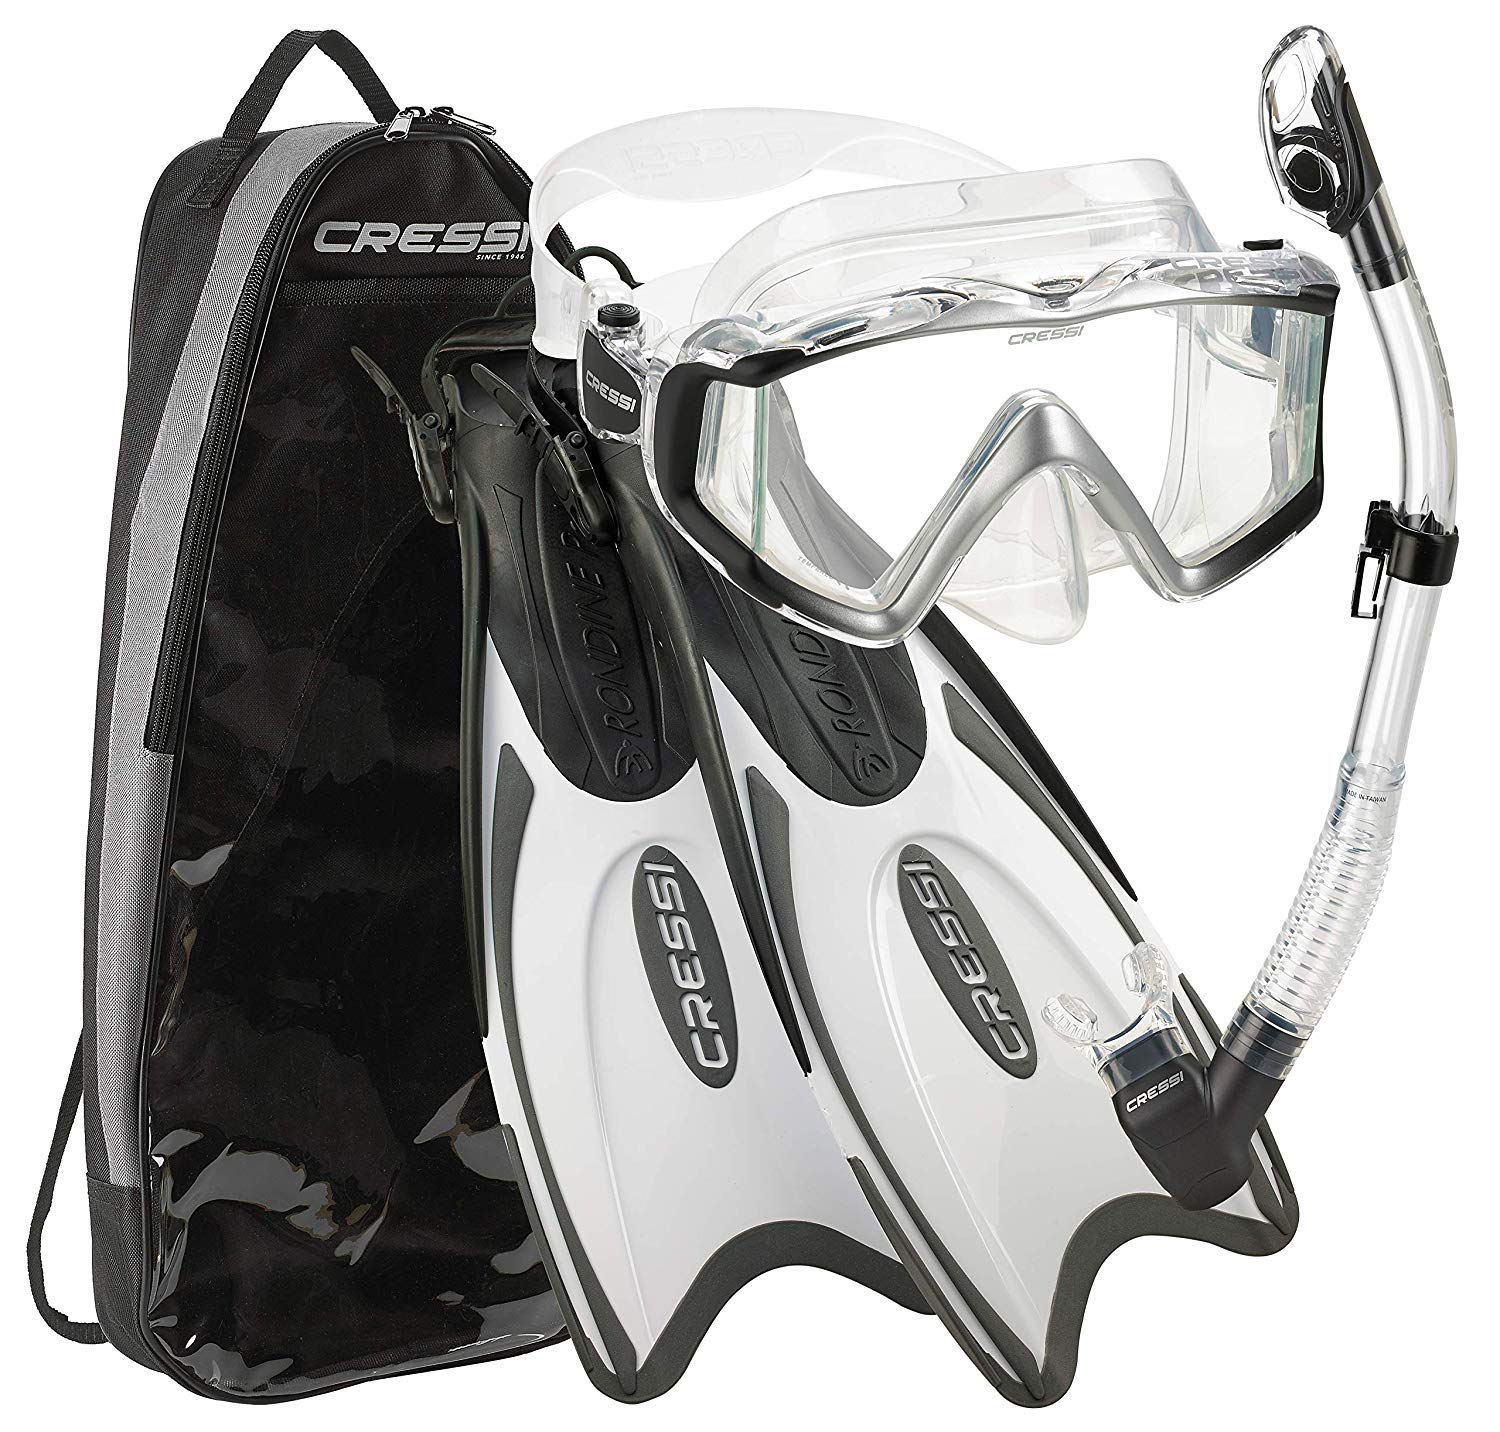 Cressi Italian Design Palau Long Adjustable Snorkeling Fin Flippers with Liberty Panoramic View Mask Dry Snorkel Set (Metallic Black White, S/M | US Man 6.5/8.5 | US Lady 7.5/9.5) by Cressi